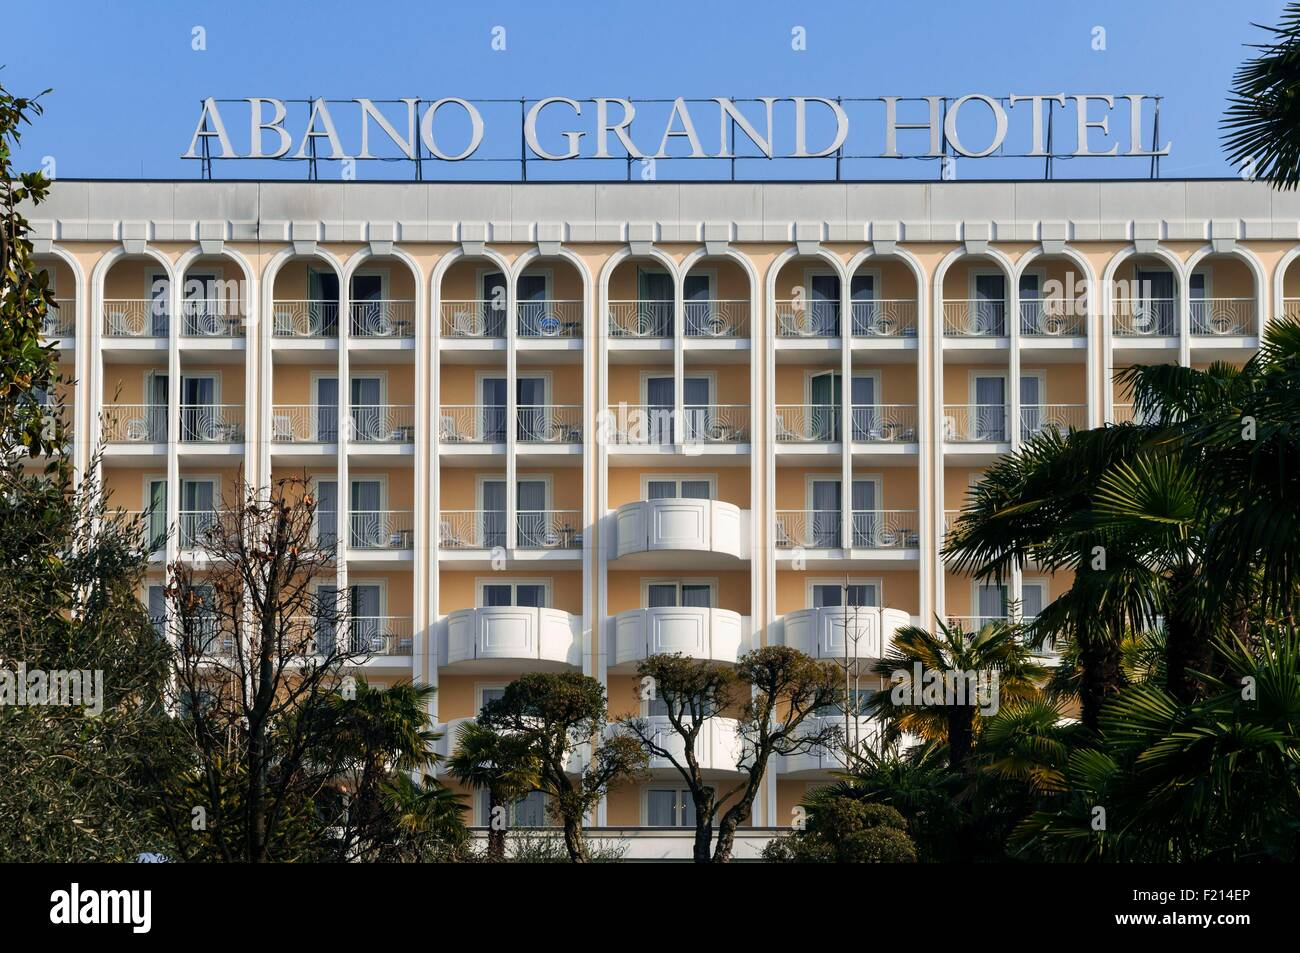 Italy Veneto Abano Terme Abano Grand Hotel Stock Photo